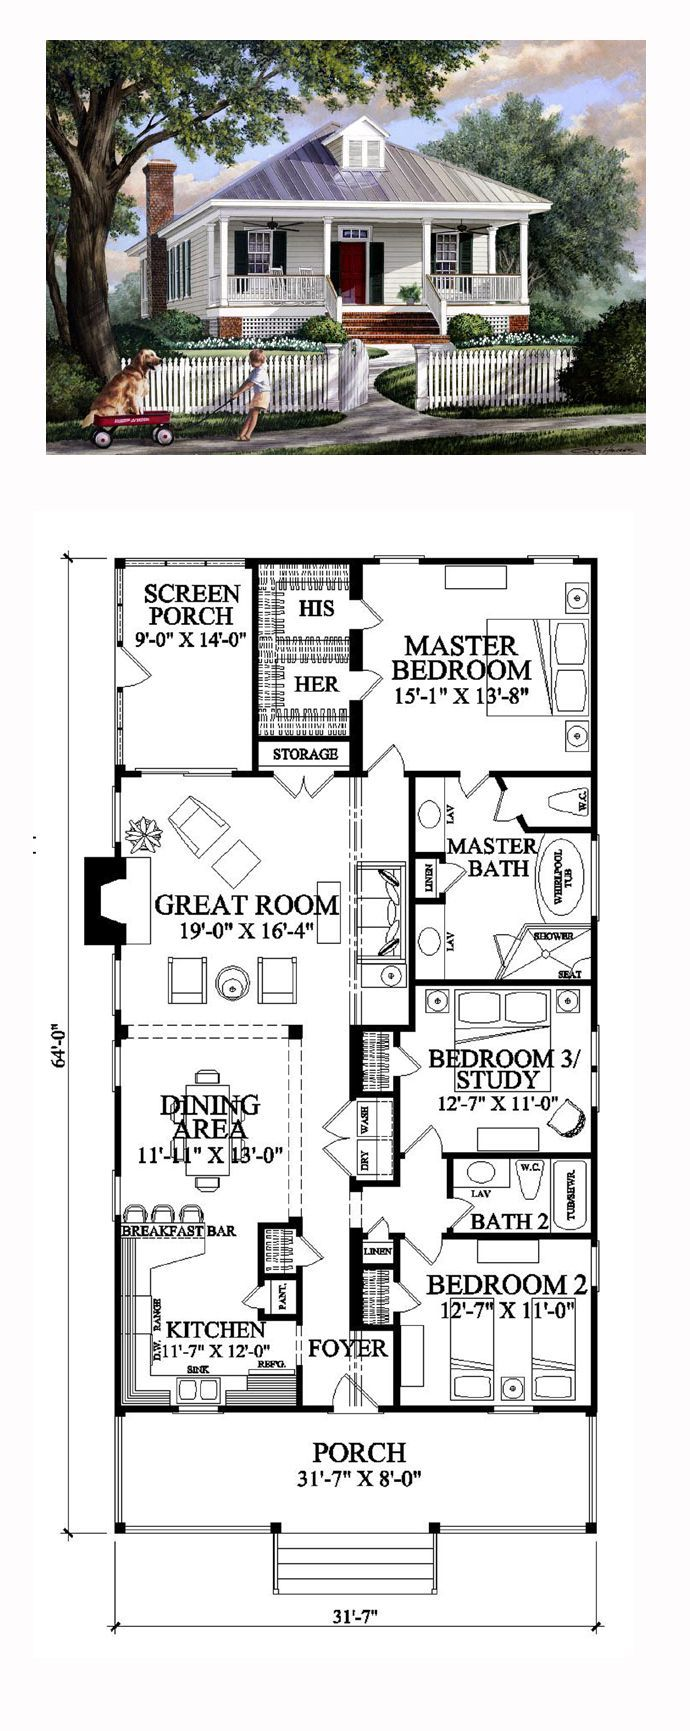 7 x 11 bathroom floor plans - Best 25 2 Bedroom House Plans Ideas That You Will Like On Pinterest Small House Floor Plans 3d House Plans And Sims House